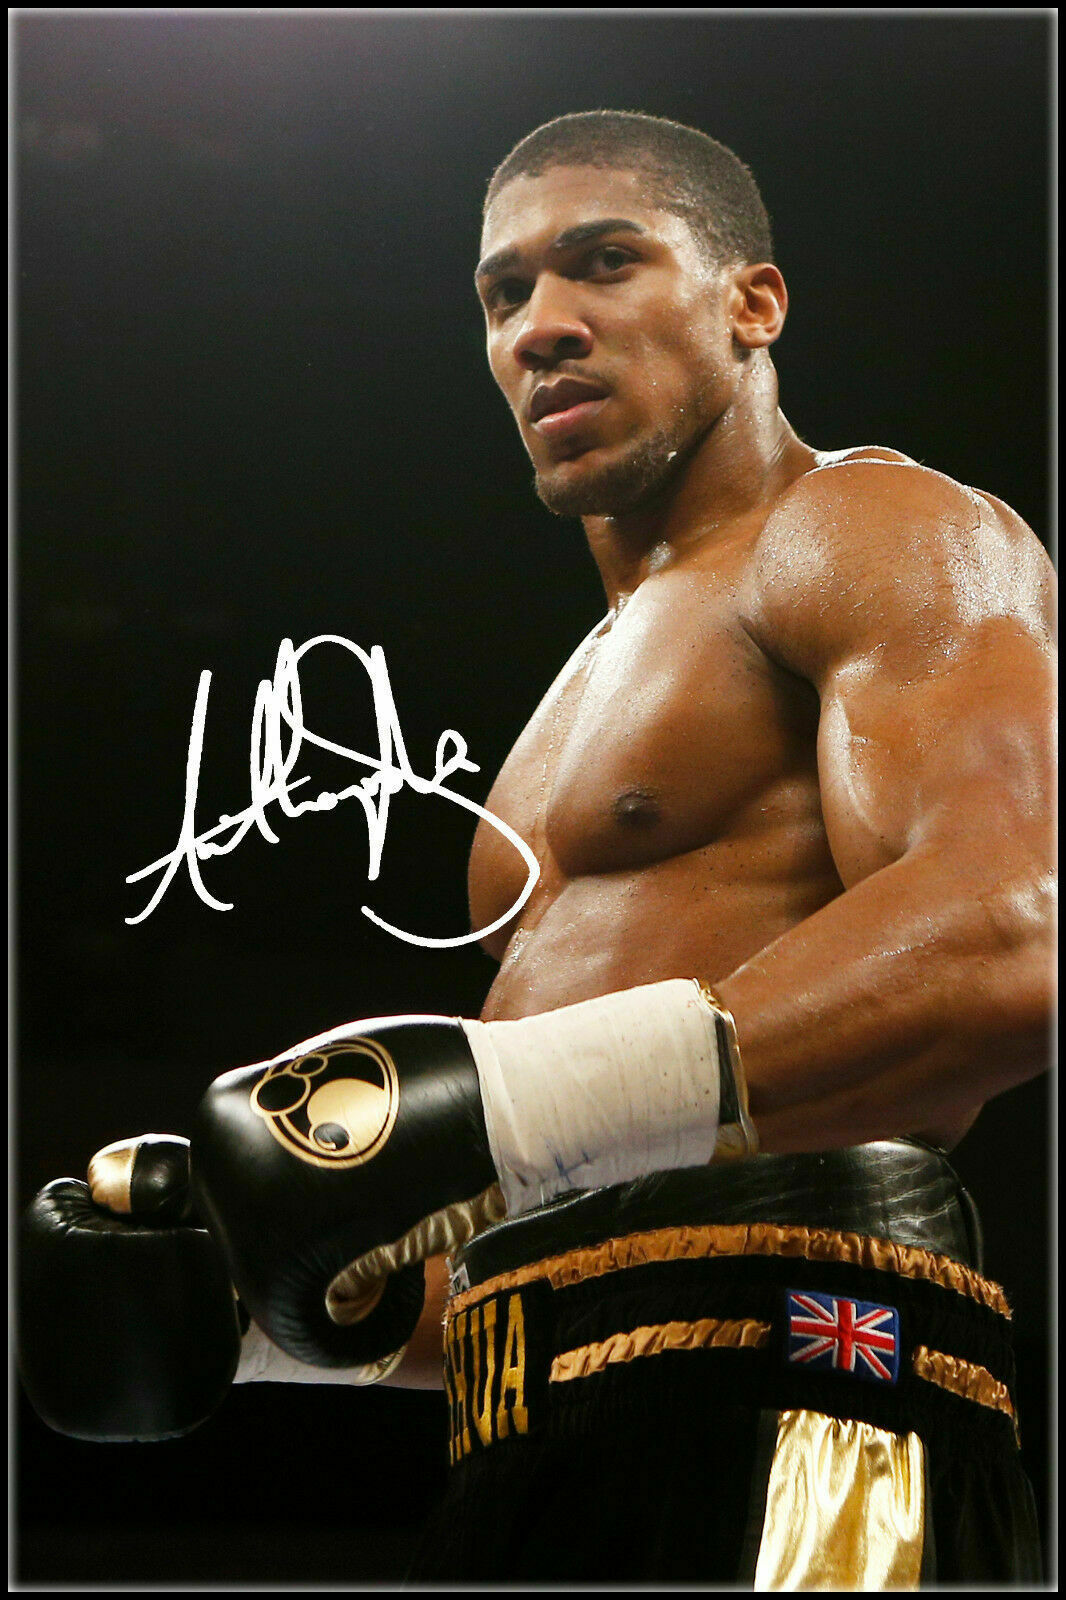 ANTHONY JOSHUA Signature Boxing Sports Art Film Print Silk Poster Home Wall Decor 24x36inch